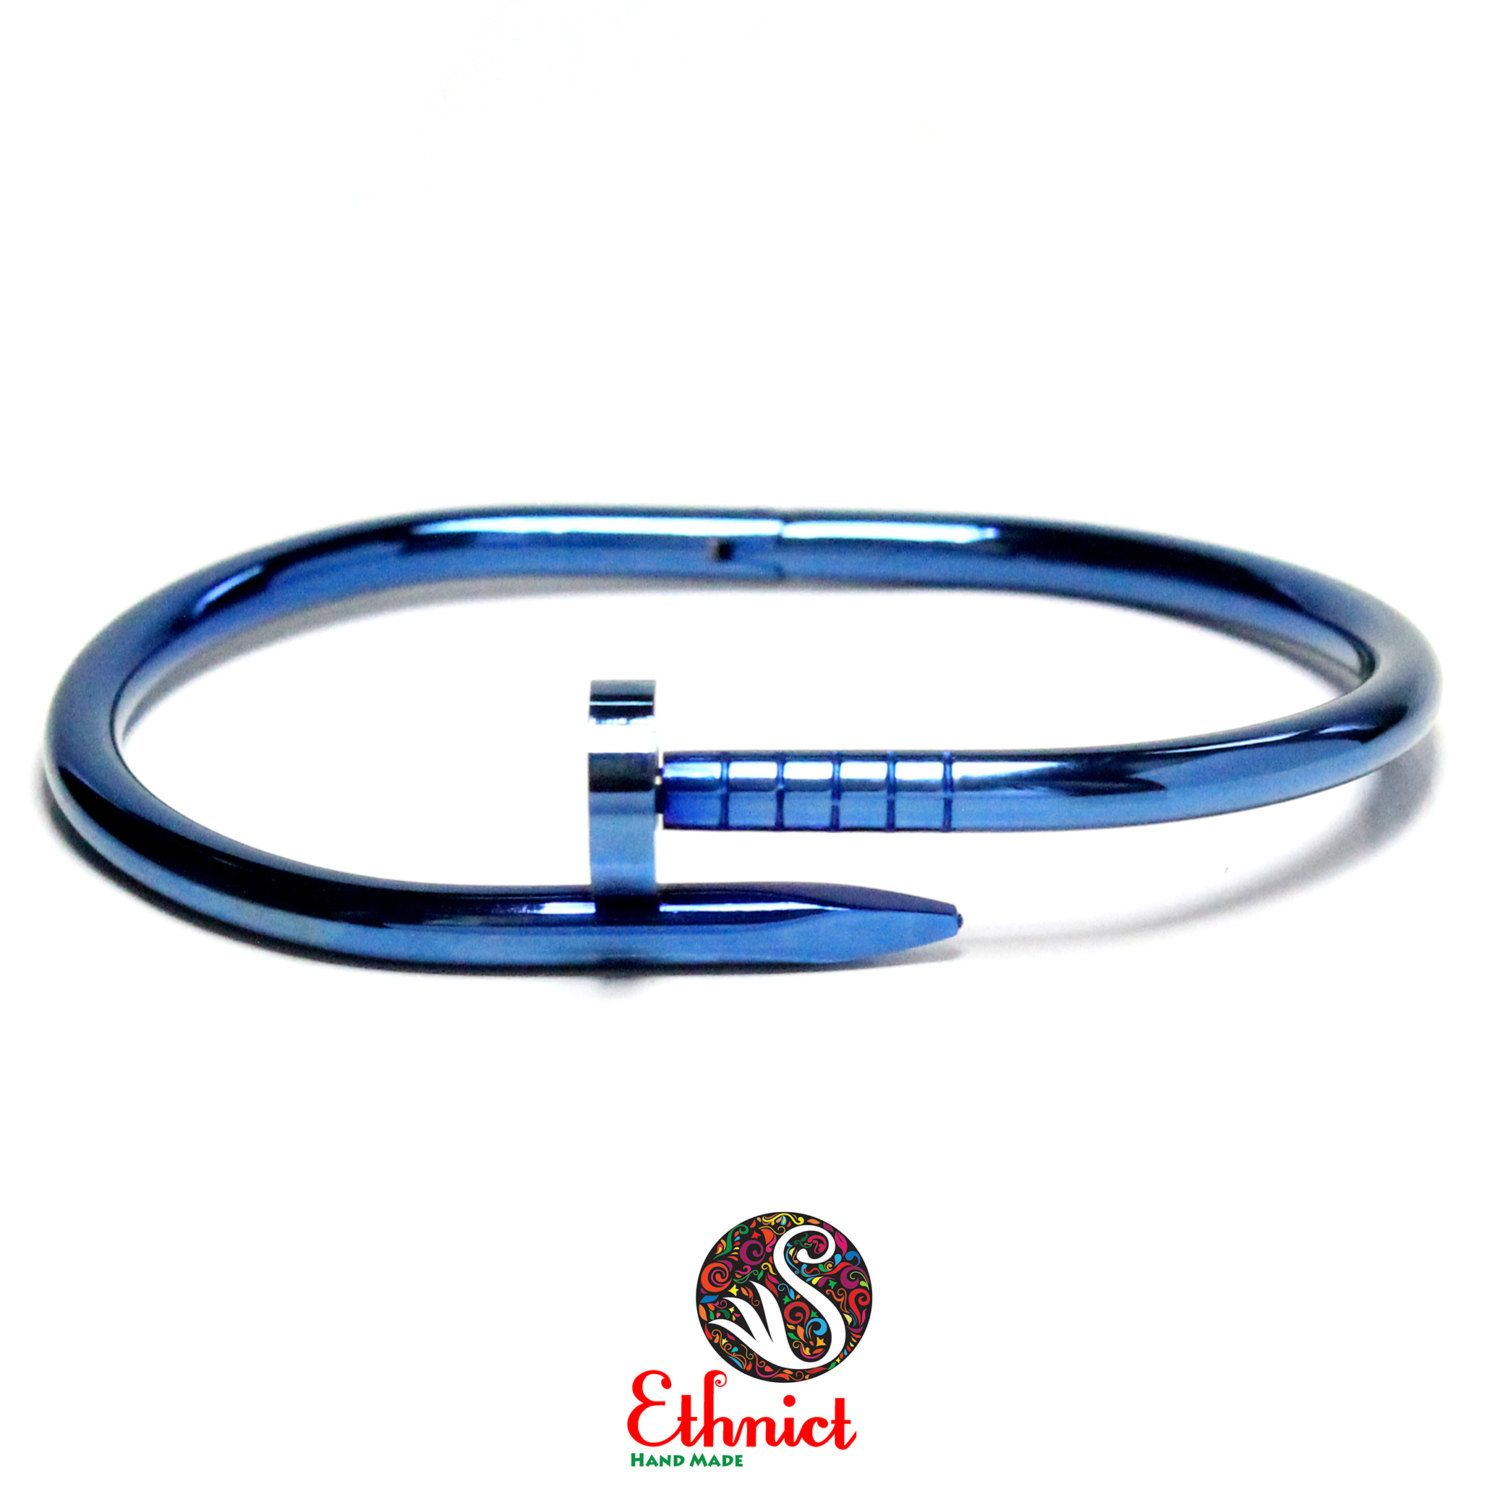 Nail Bracelet Stainless Steel Bangle Blue Mens Womens Cuff 24 90 Usd By Ethnicts